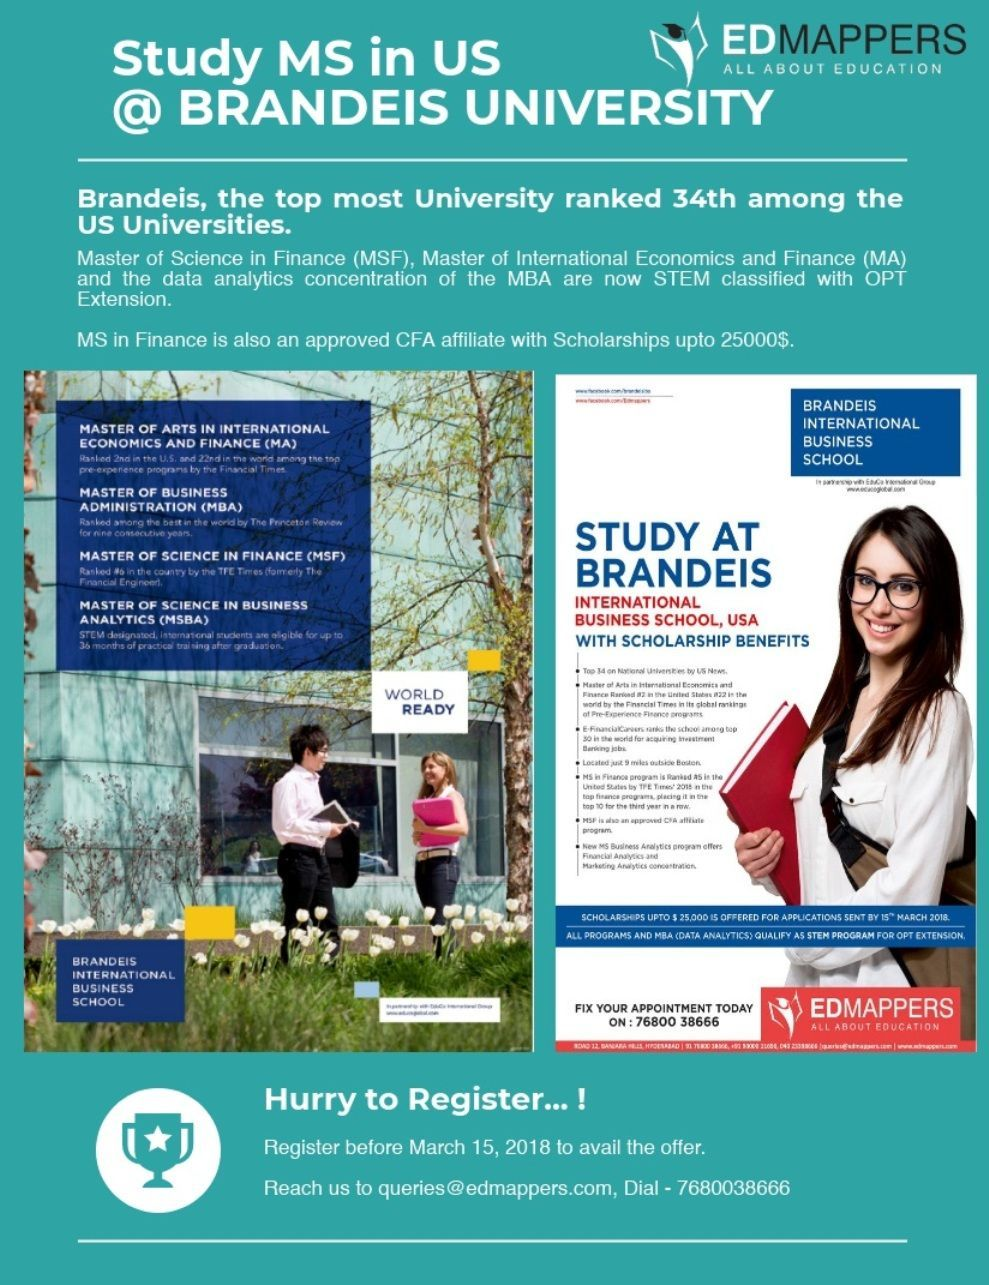 Study MS in USA at Brandeis University • Ranked 34th by US News